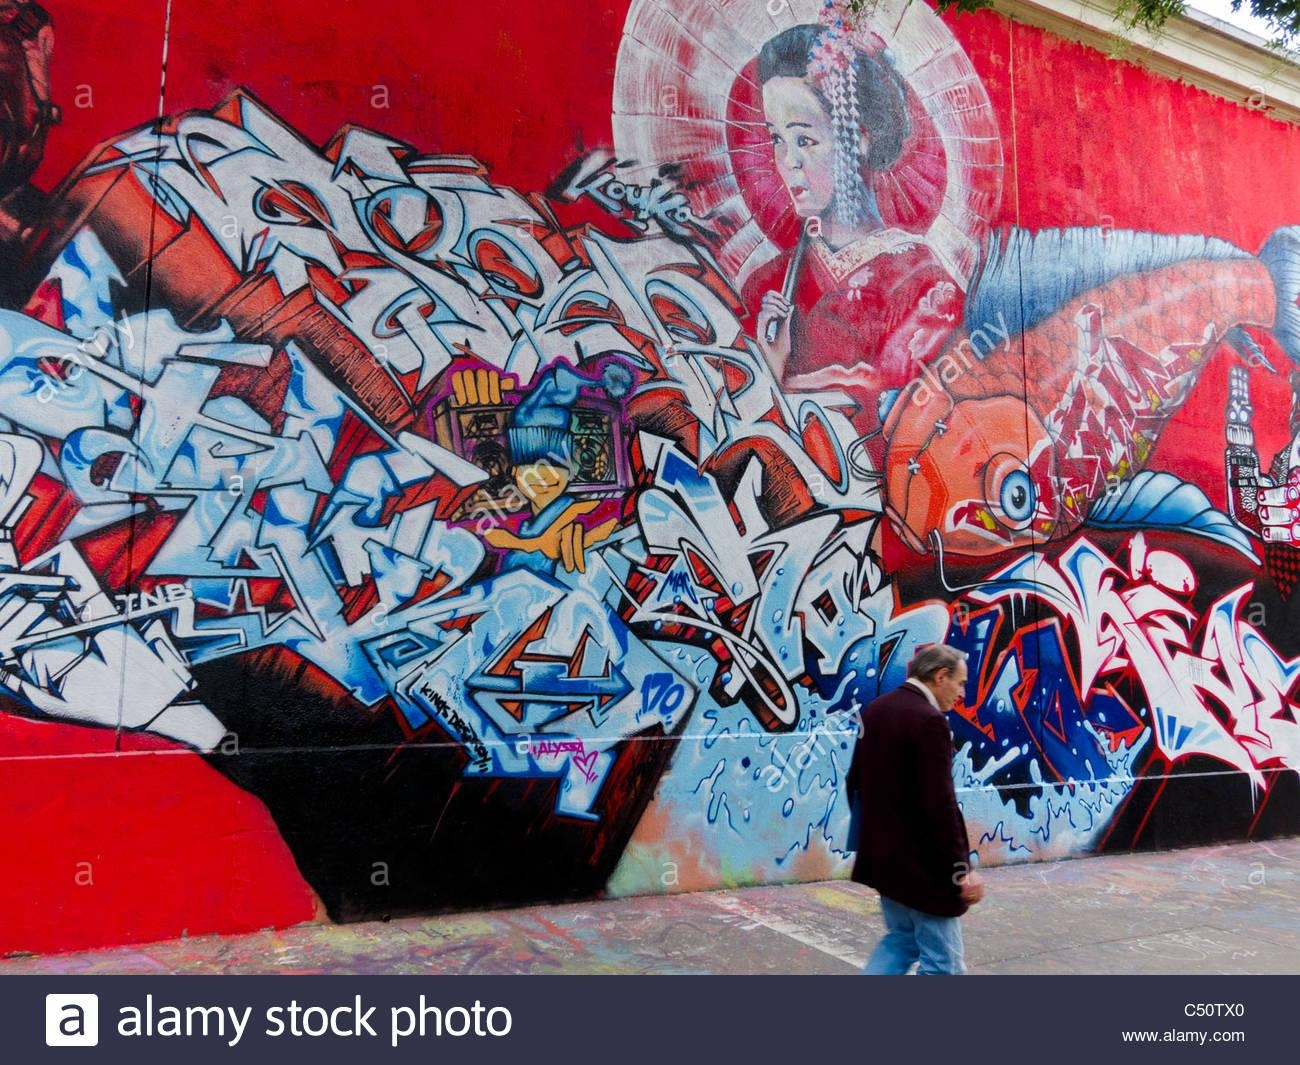 Paris, France, Graffiti Art, Public, Painting Wall, Japanese Theme Intended For Street Scene Wall Art (View 12 of 20)